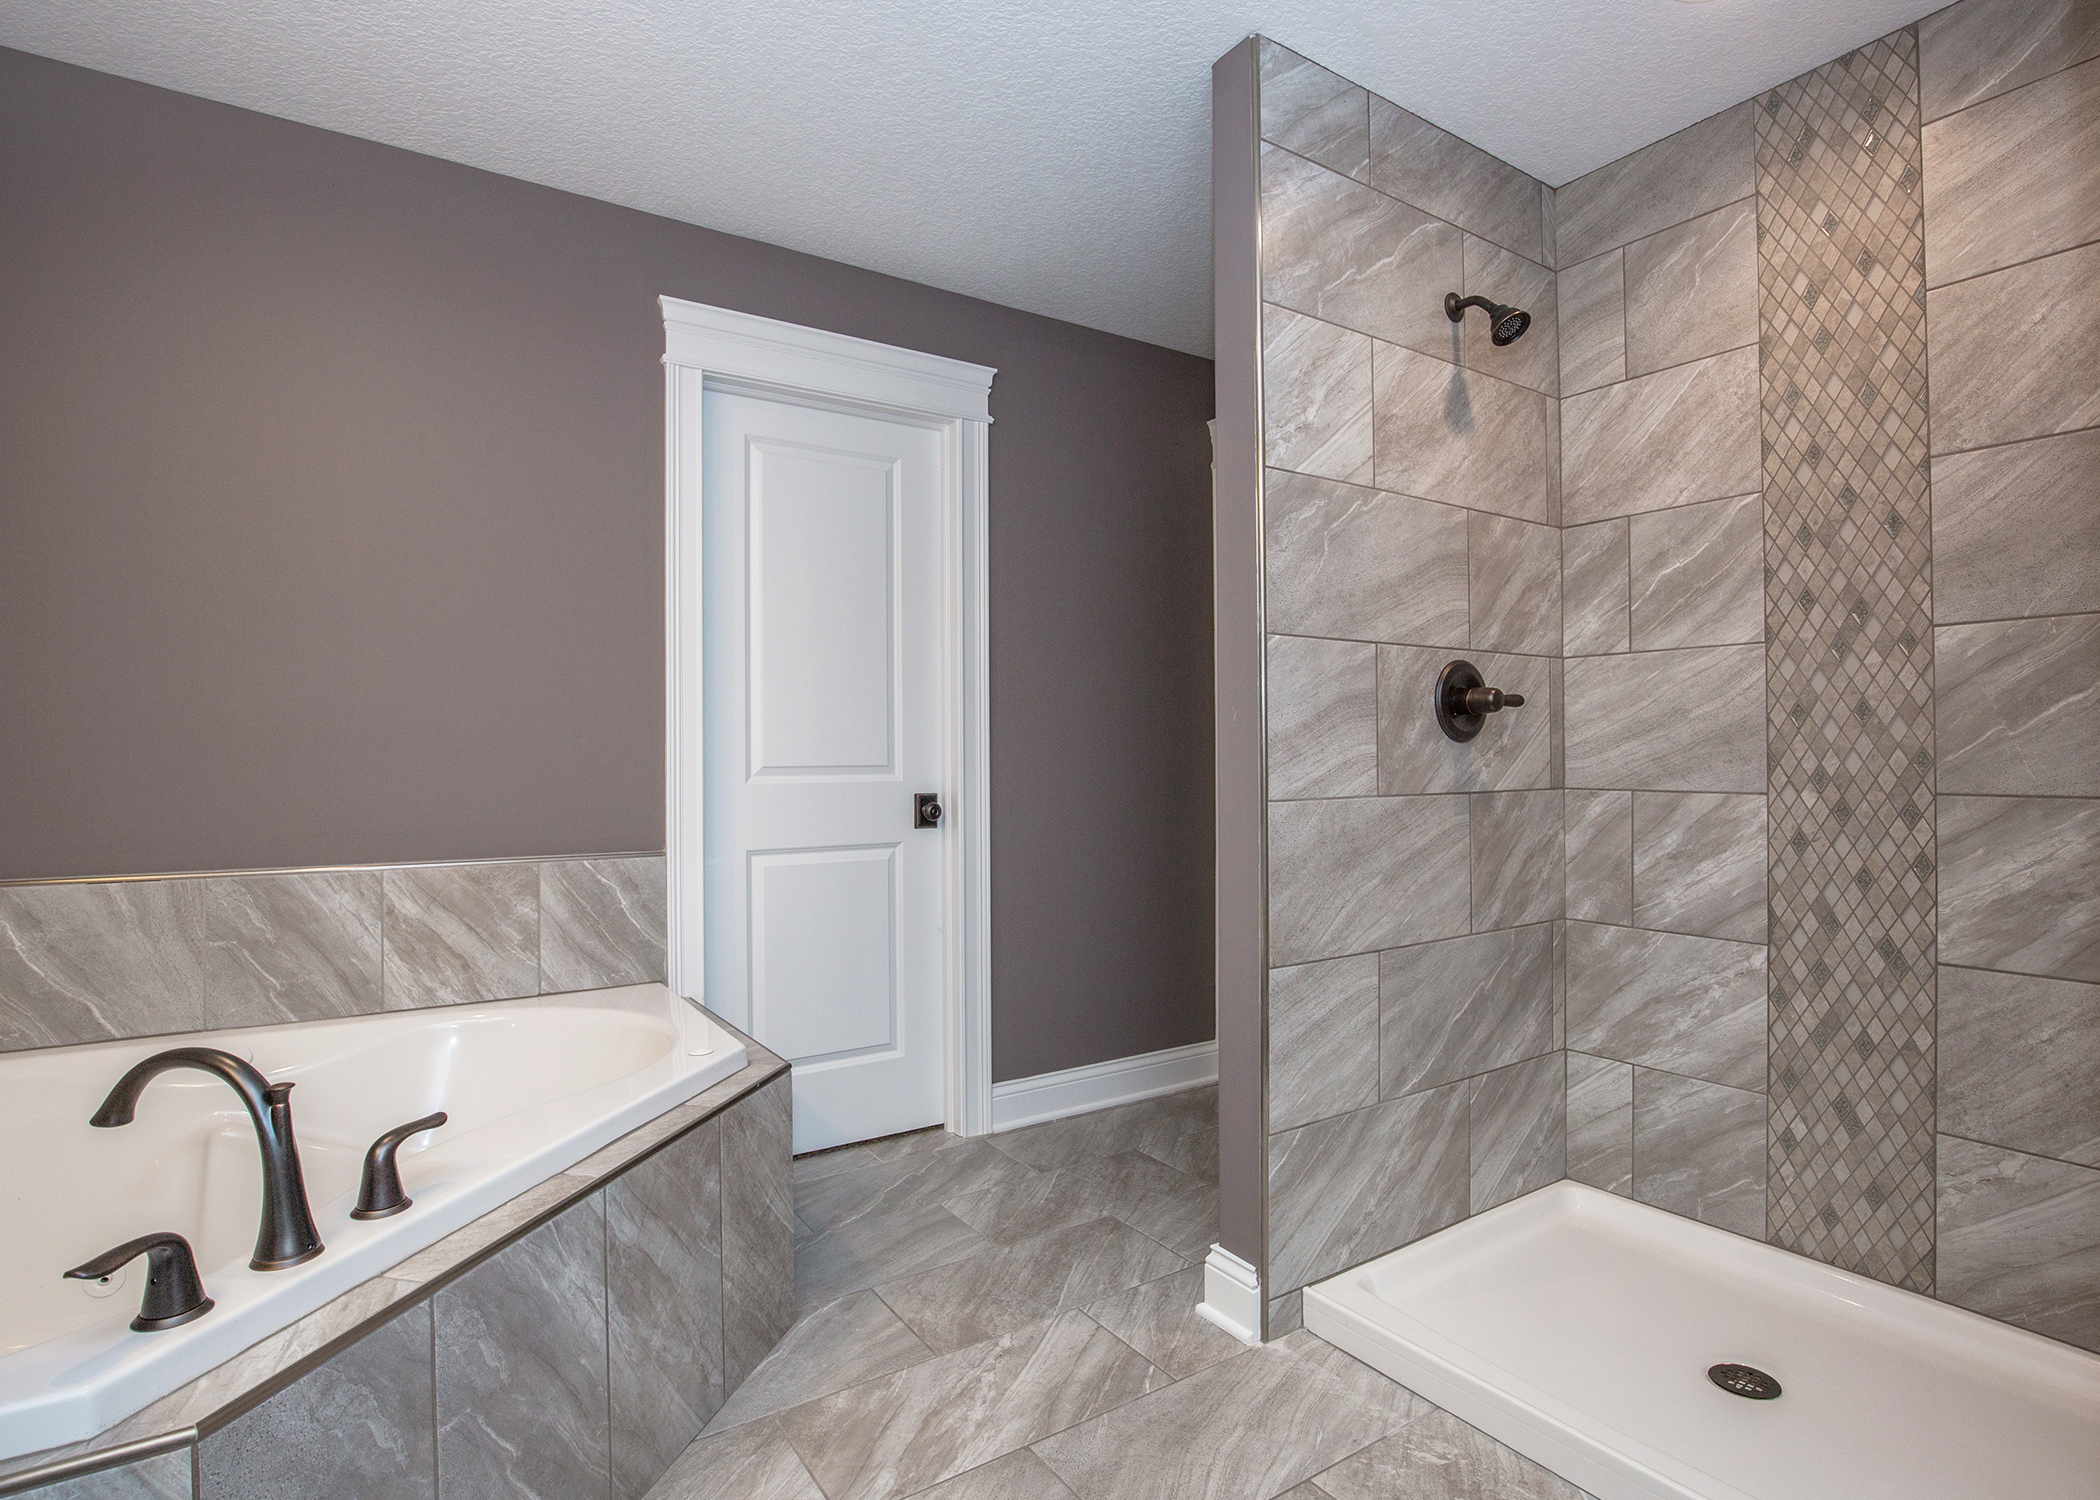 Bathroom with soaker tub and shower